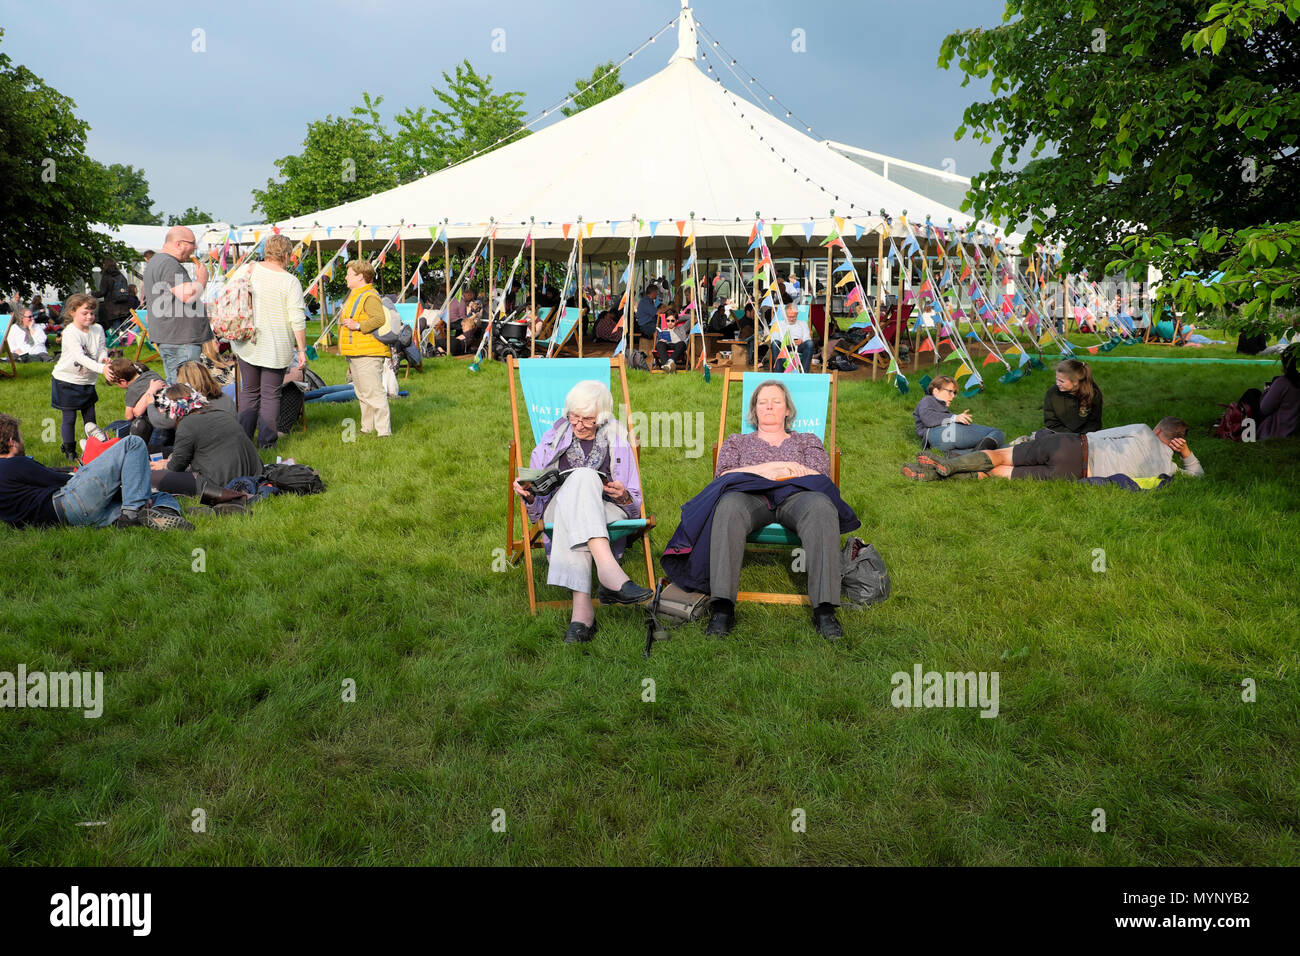 People in deckchairs and visitors relaxing at the marquee on the Hay Book Festival site May 2018 in Hay-on-Wye Wales UK  KATHY DEWITT - Stock Image